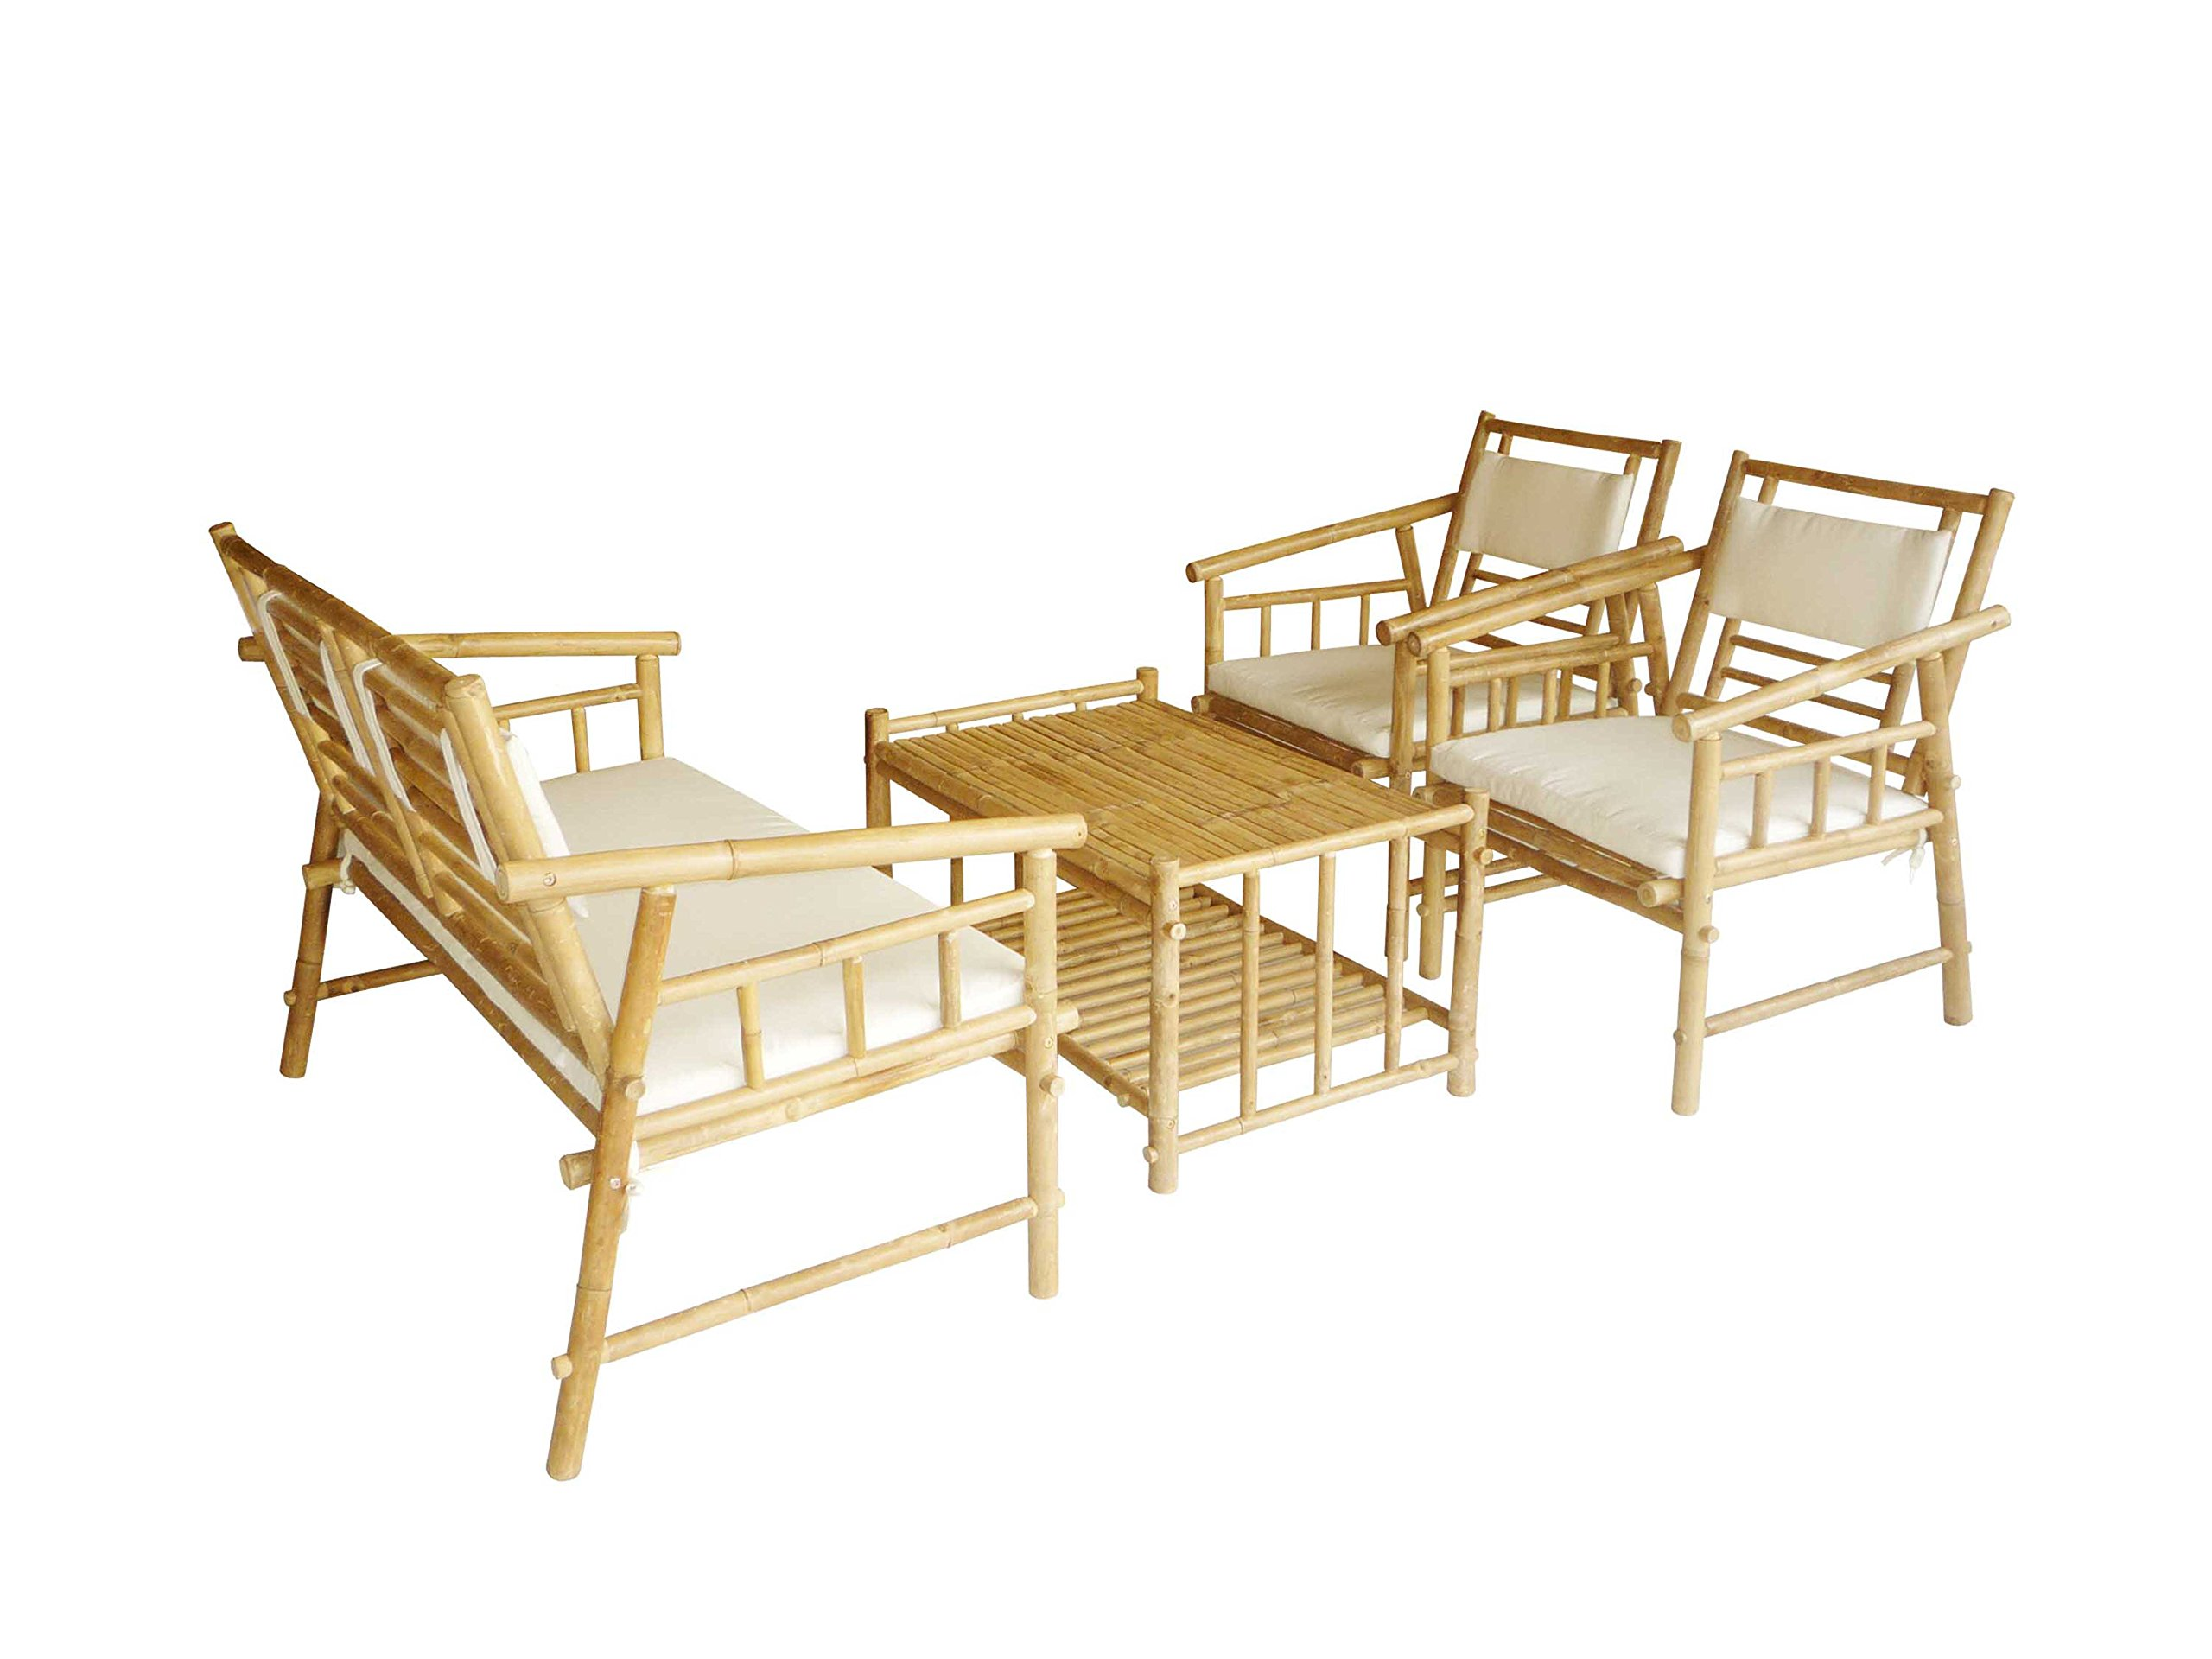 Zero Emission World Set-015 Bamboo Sofa Set (1 Love Seat, 2 Chairs, 1 Table) 1 Set Packed In 3 Cartons, Natural, 35X22X18